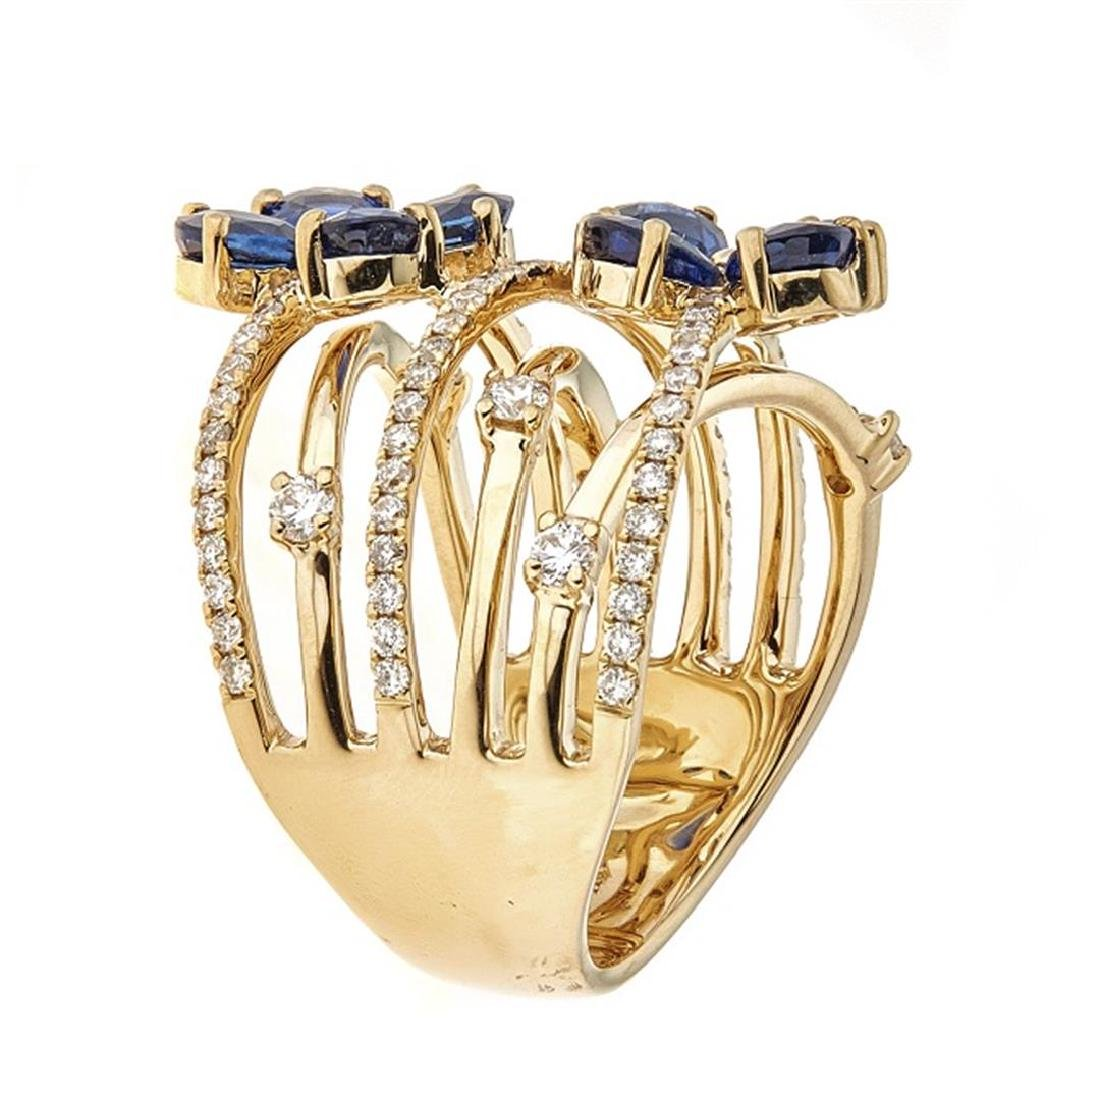 3.18 ctw Sapphire and Diamond Ring - 18KT Yellow Gold - 2